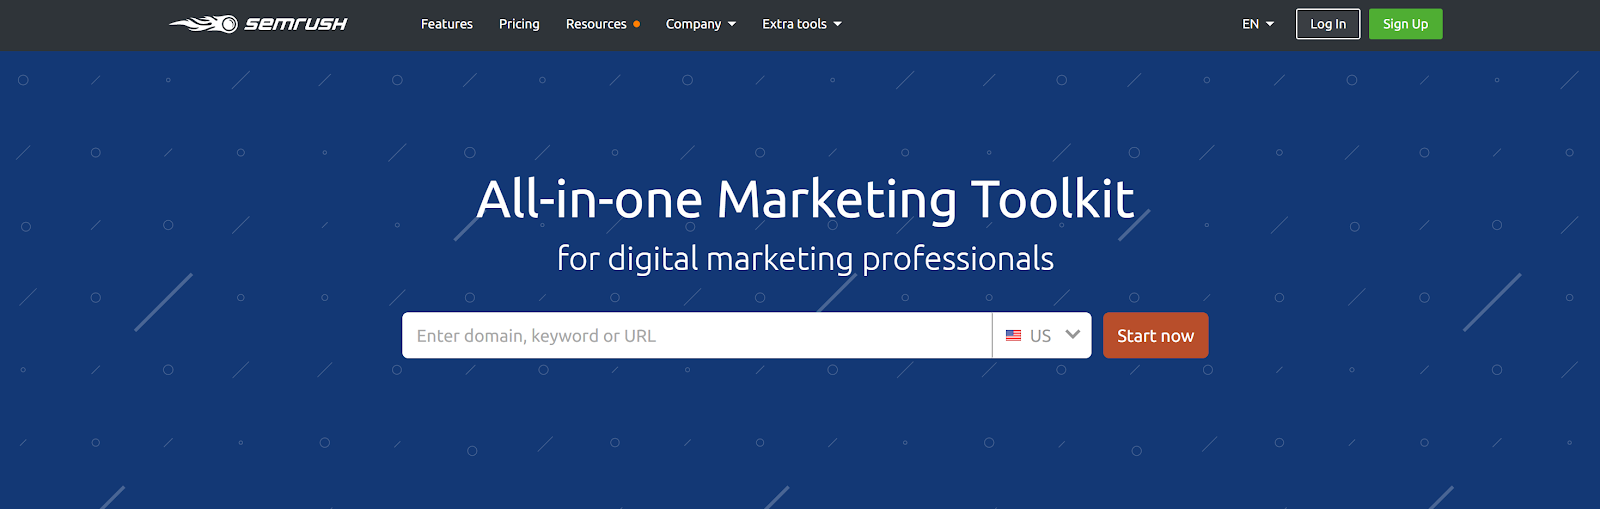 SEMrush is an all-in-one seo research toolkit